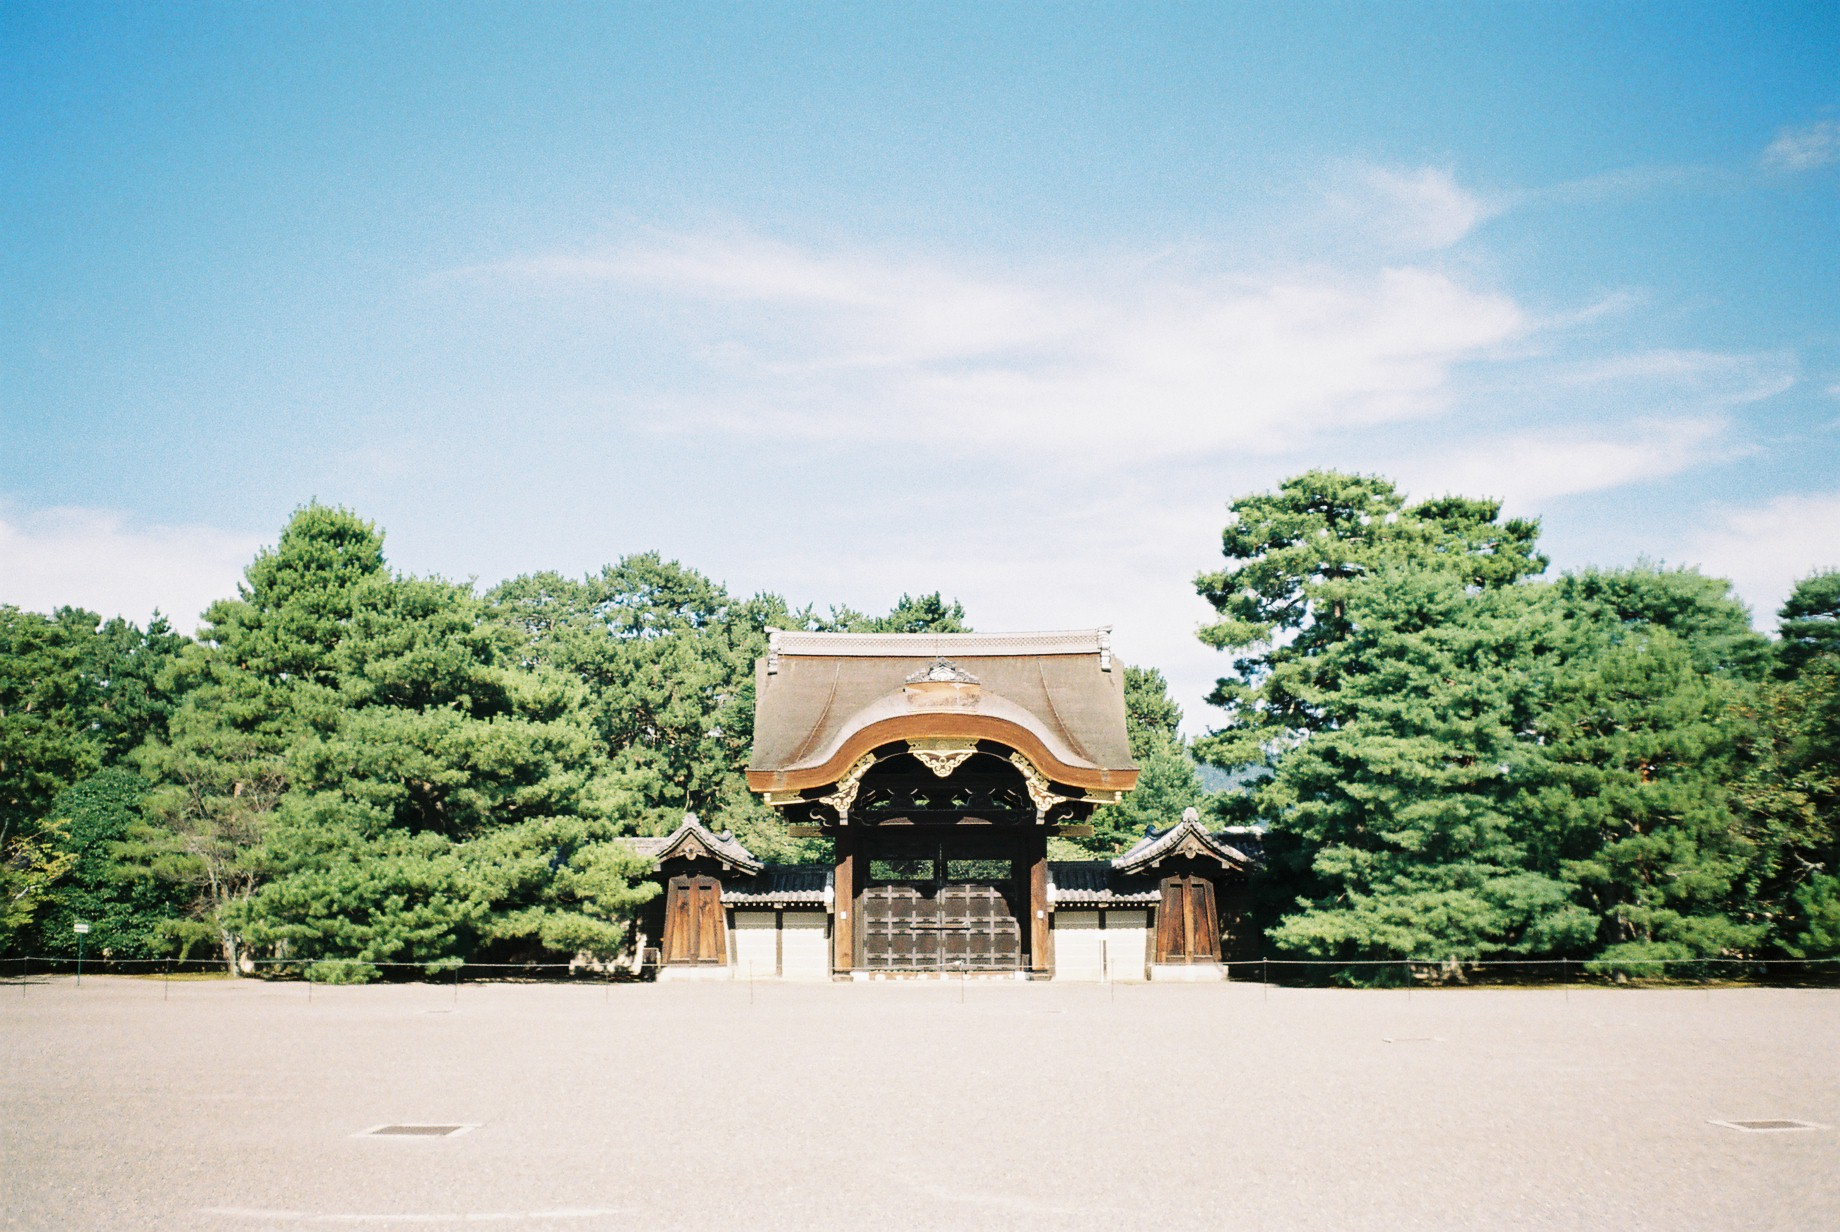 Le  Kyōto-gosho - 京都御所-The   Kyoto Imperial Palace